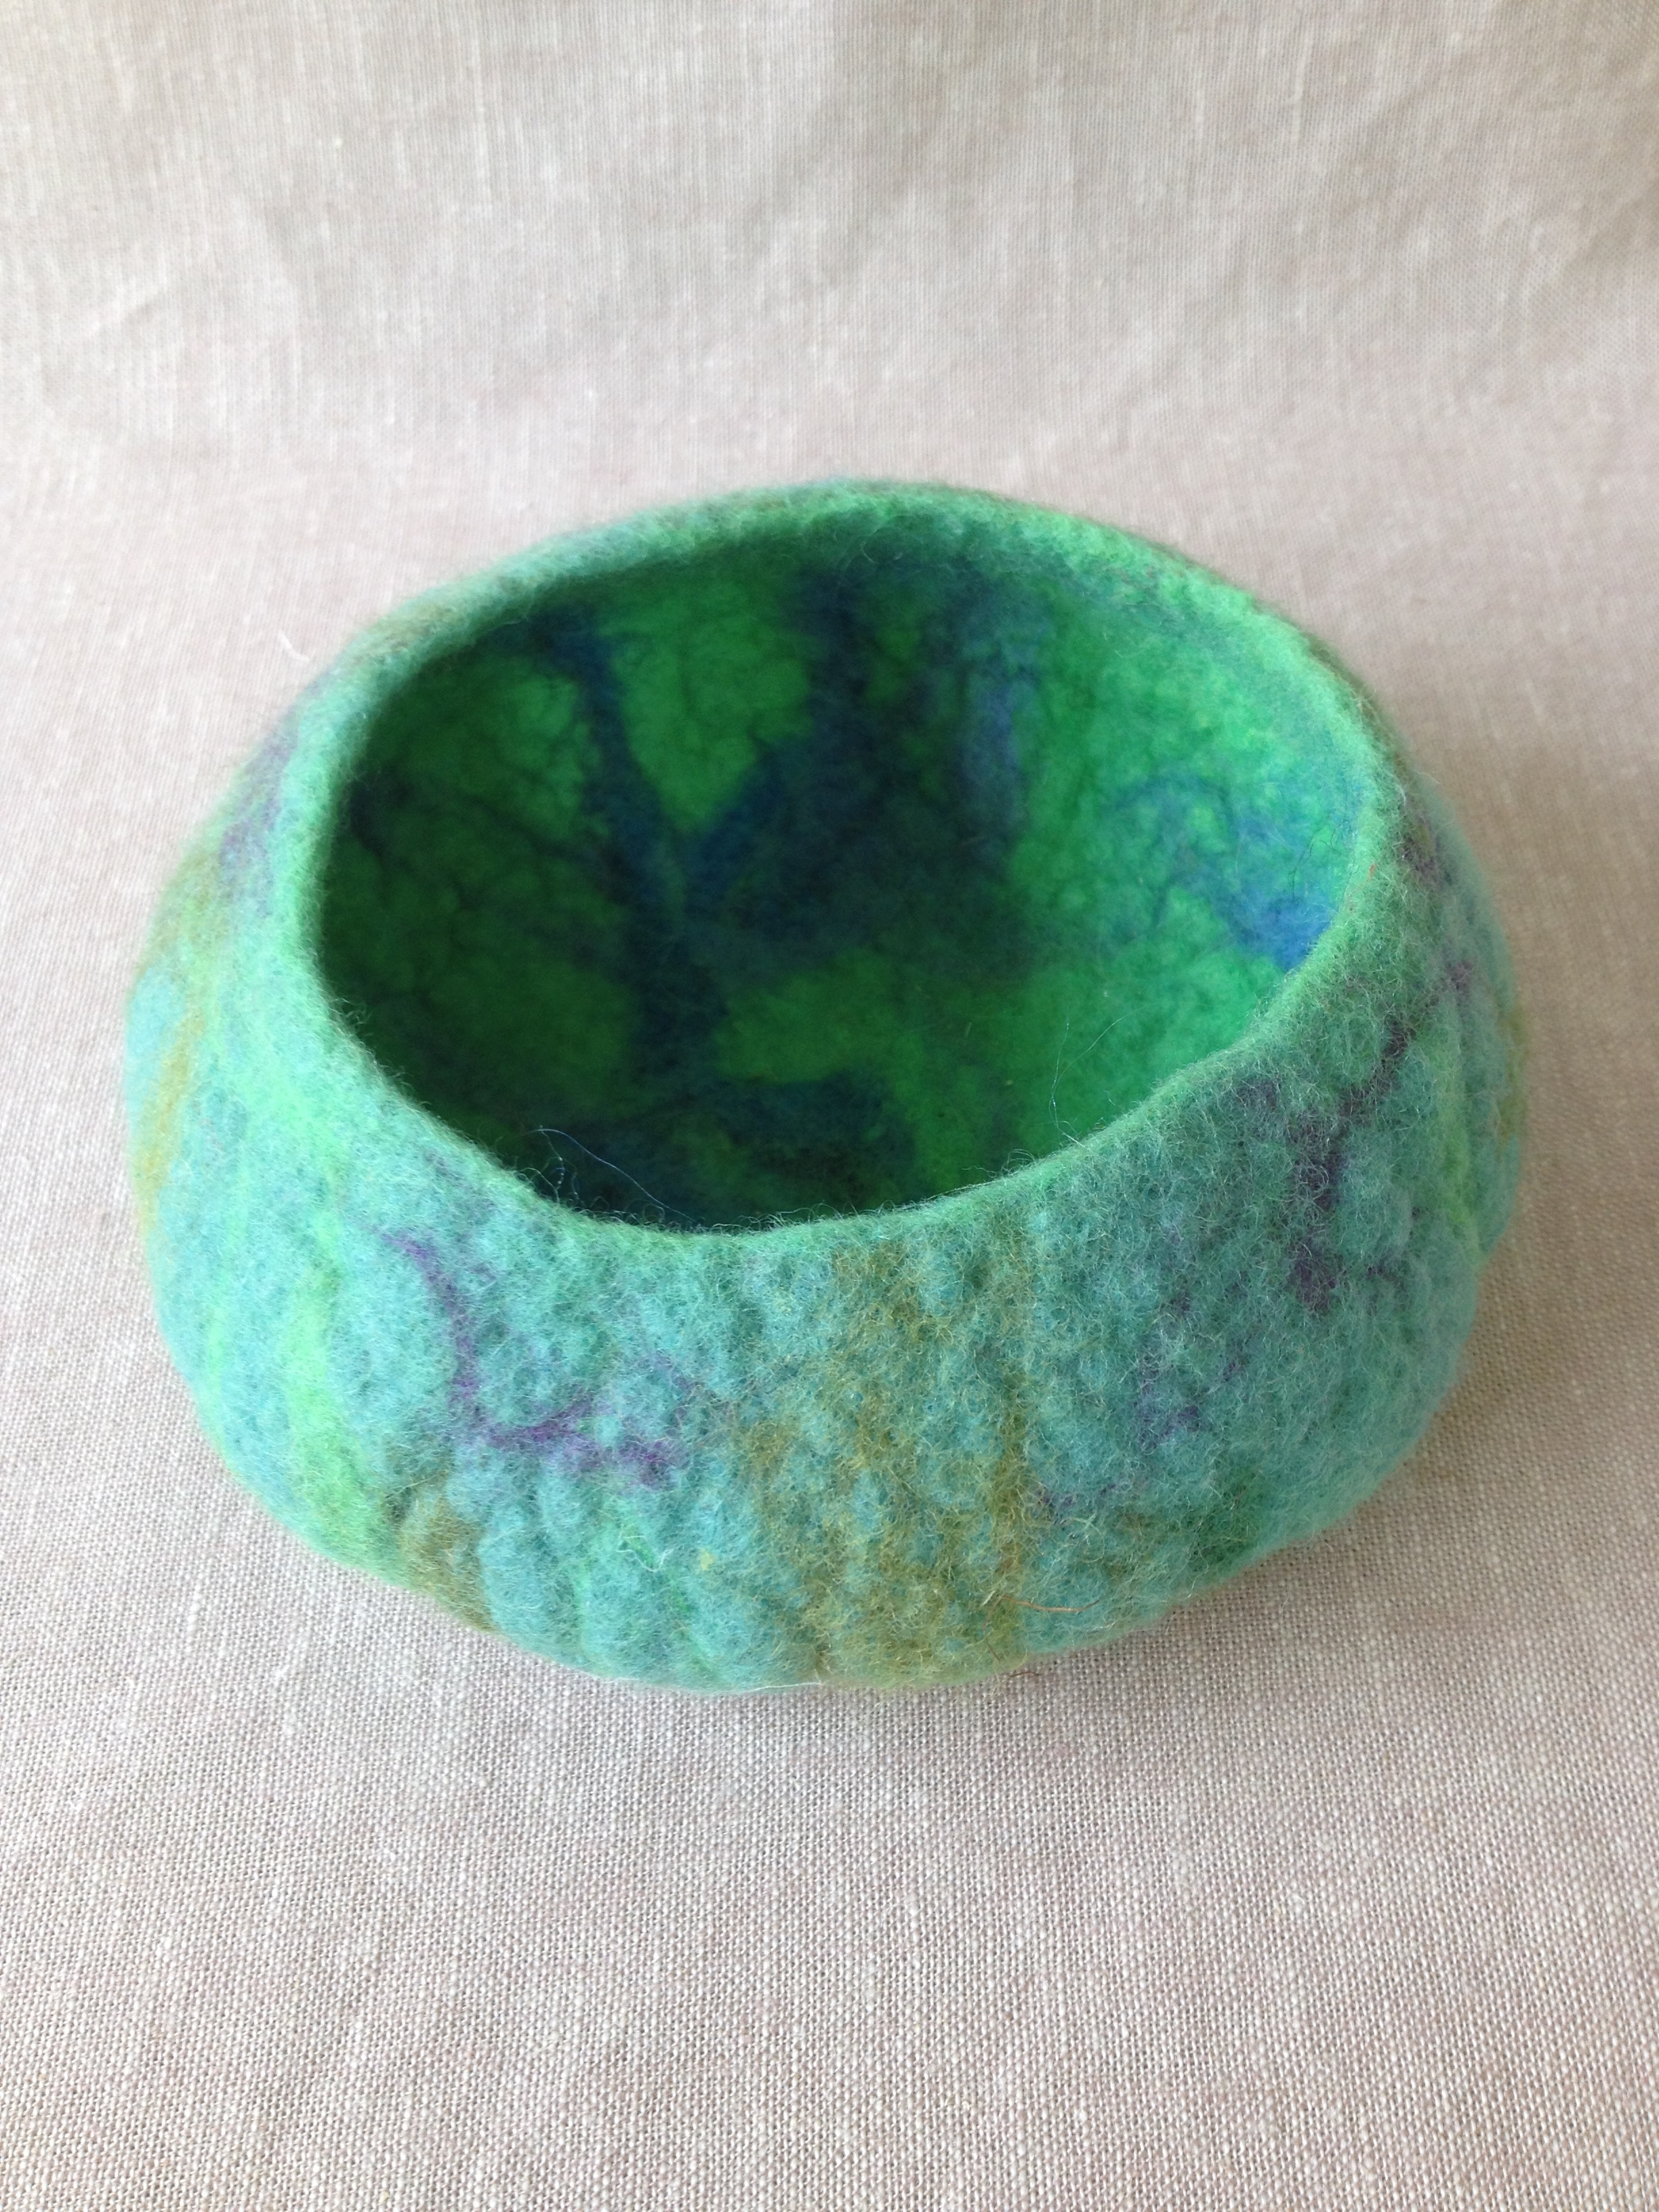 My first wet-felted piece that lit the spark.